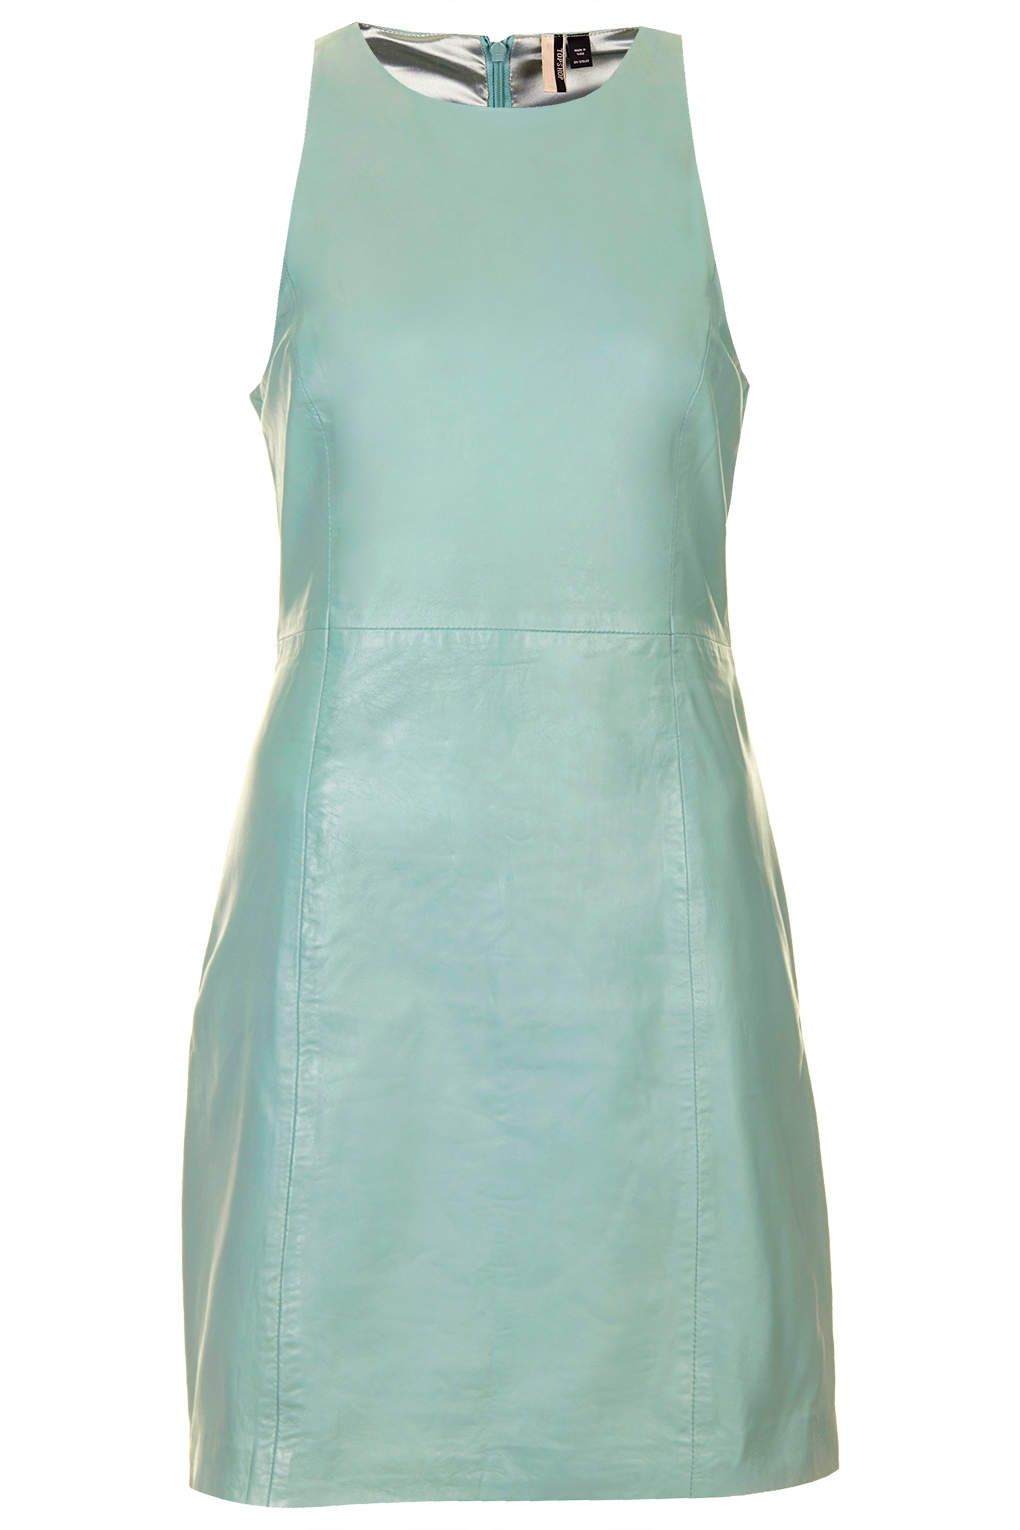 Premium Leather Cut-Away Shift Dress - Dresses - Clothing - Topshop ...